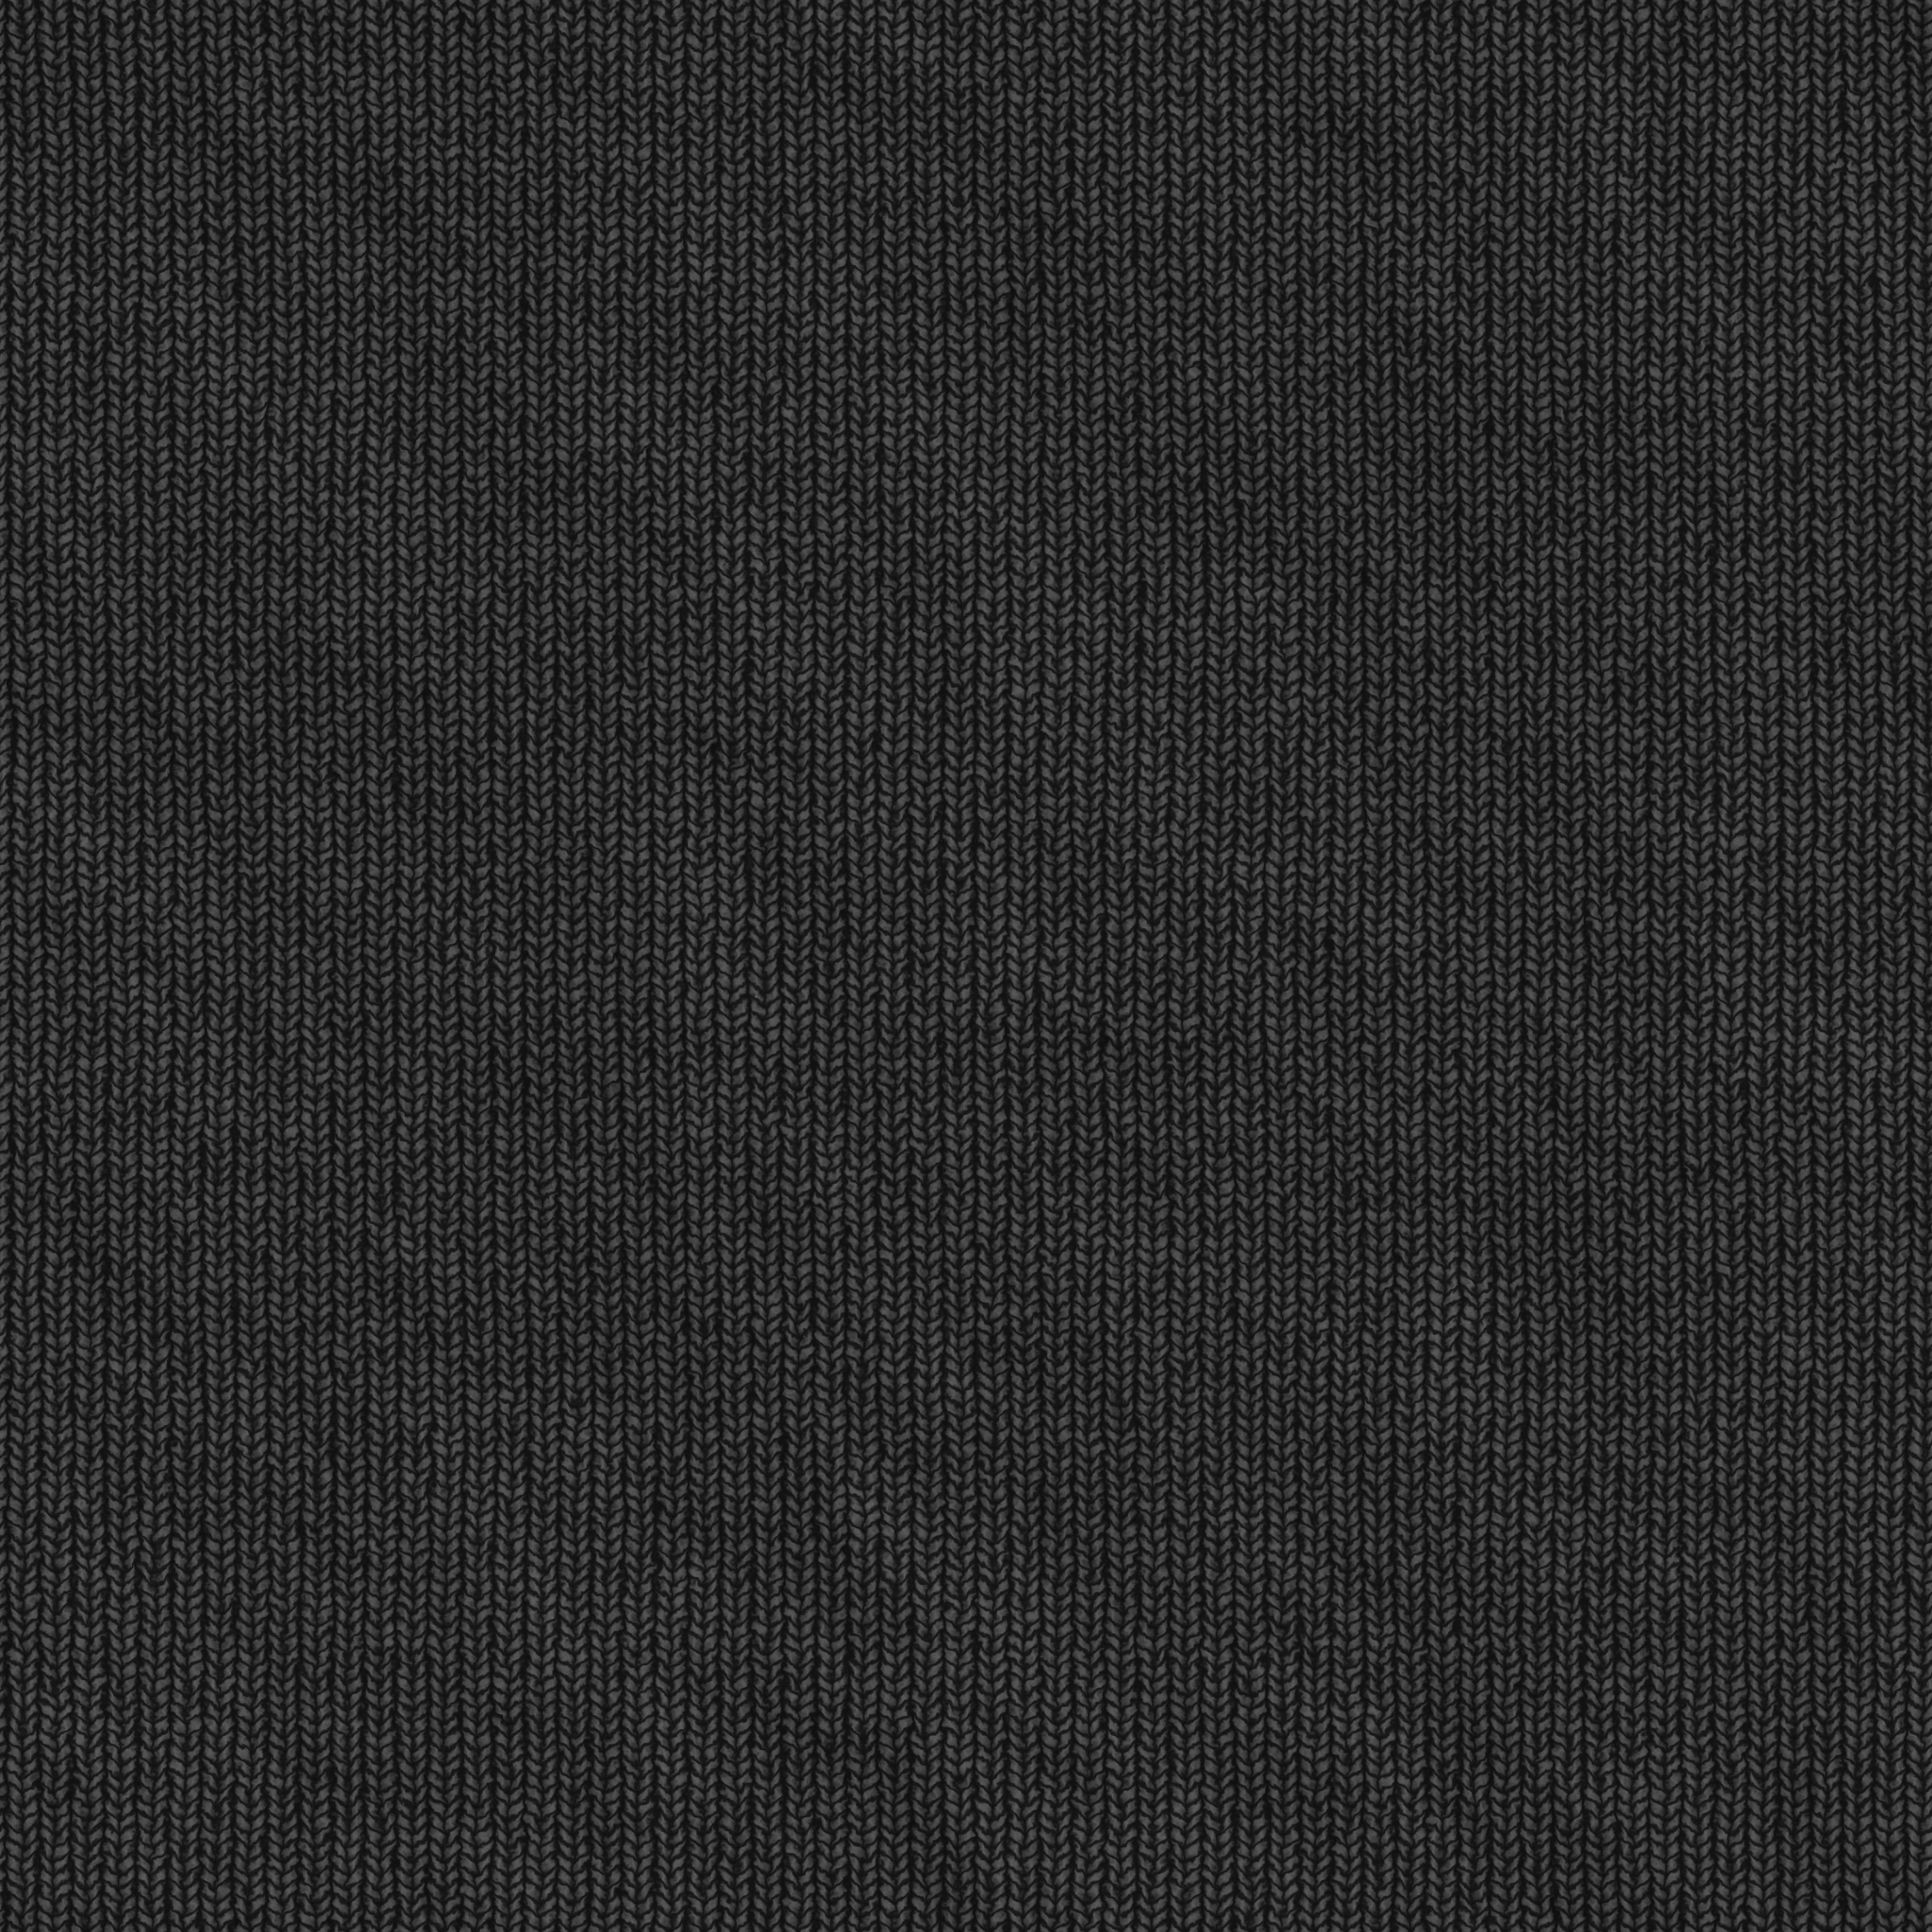 Camoflage seamless texture maps - free to use - AOA Forums for Grey Fabric Texture Seamless  58lpg